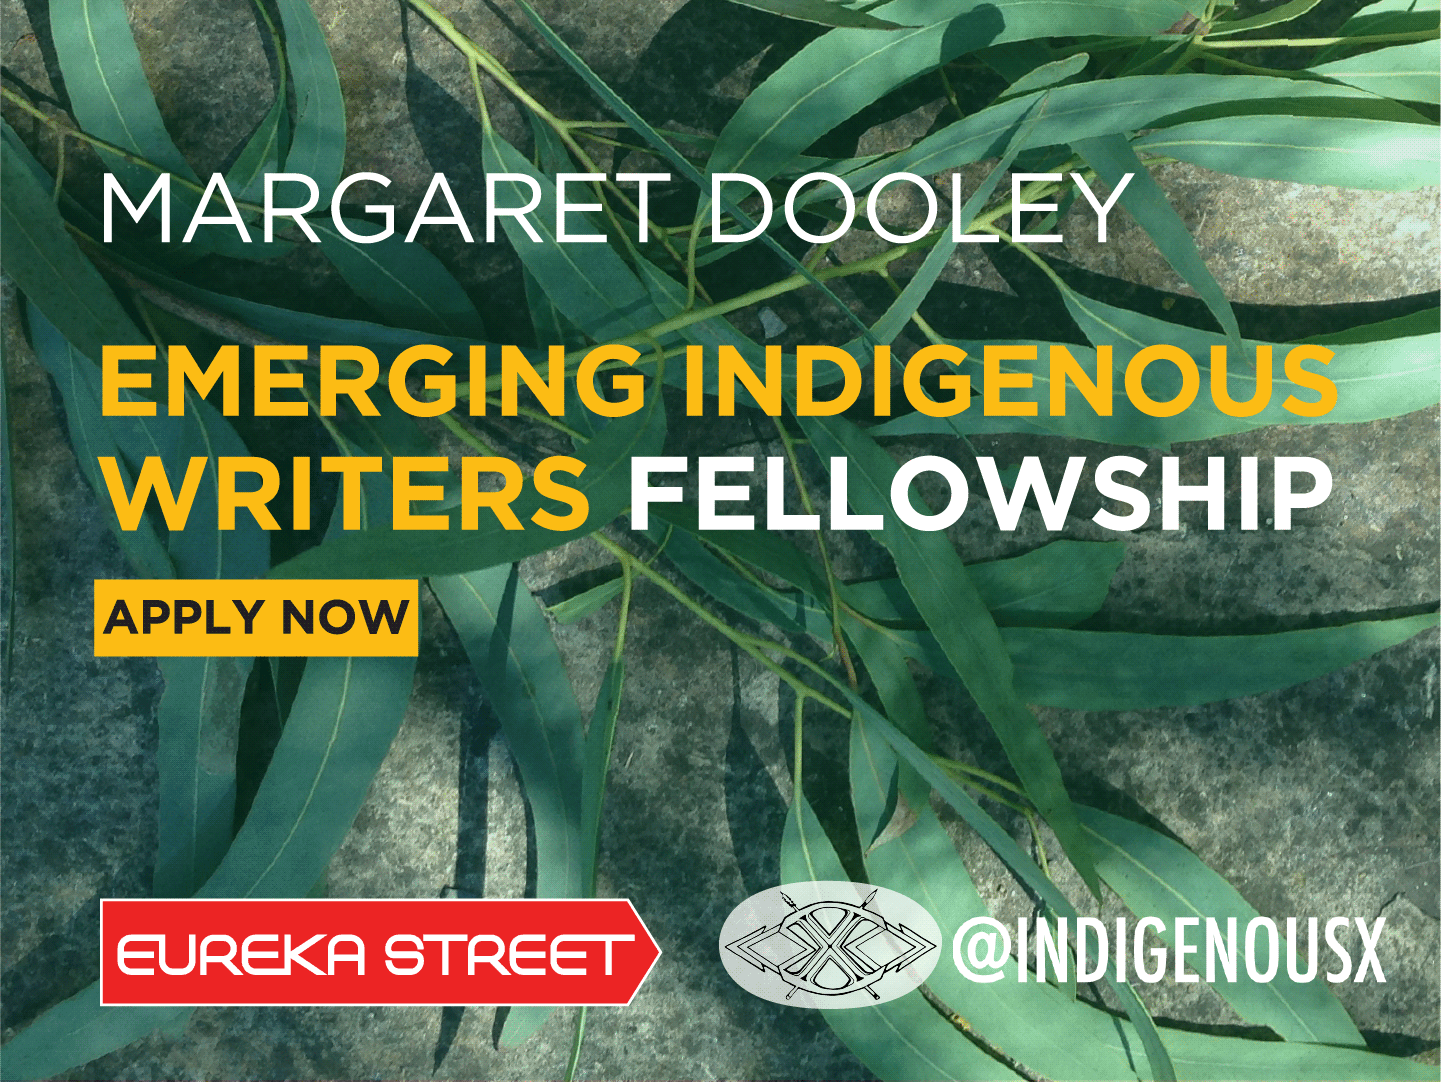 Margaret Dooley Emerging Indigenous Writers Fellowship